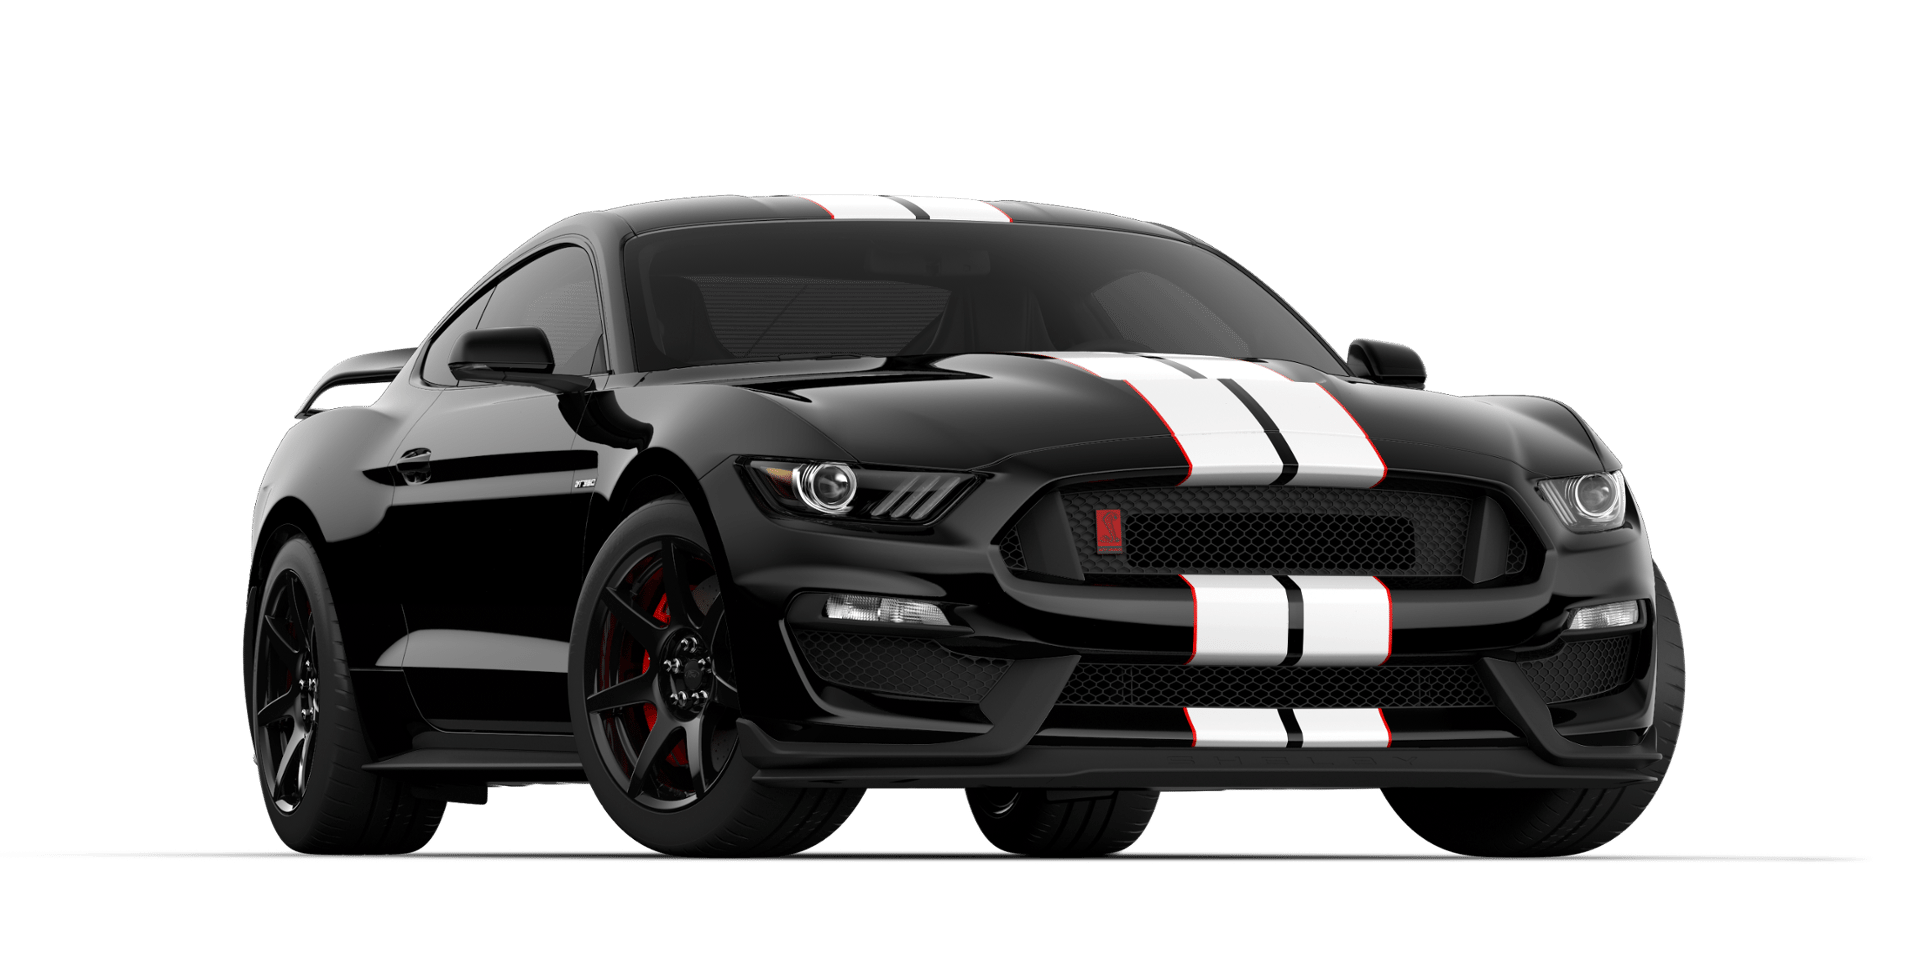 2018 Mustang Mustang Shelby Ford Mustang Ford Mustang Shelby